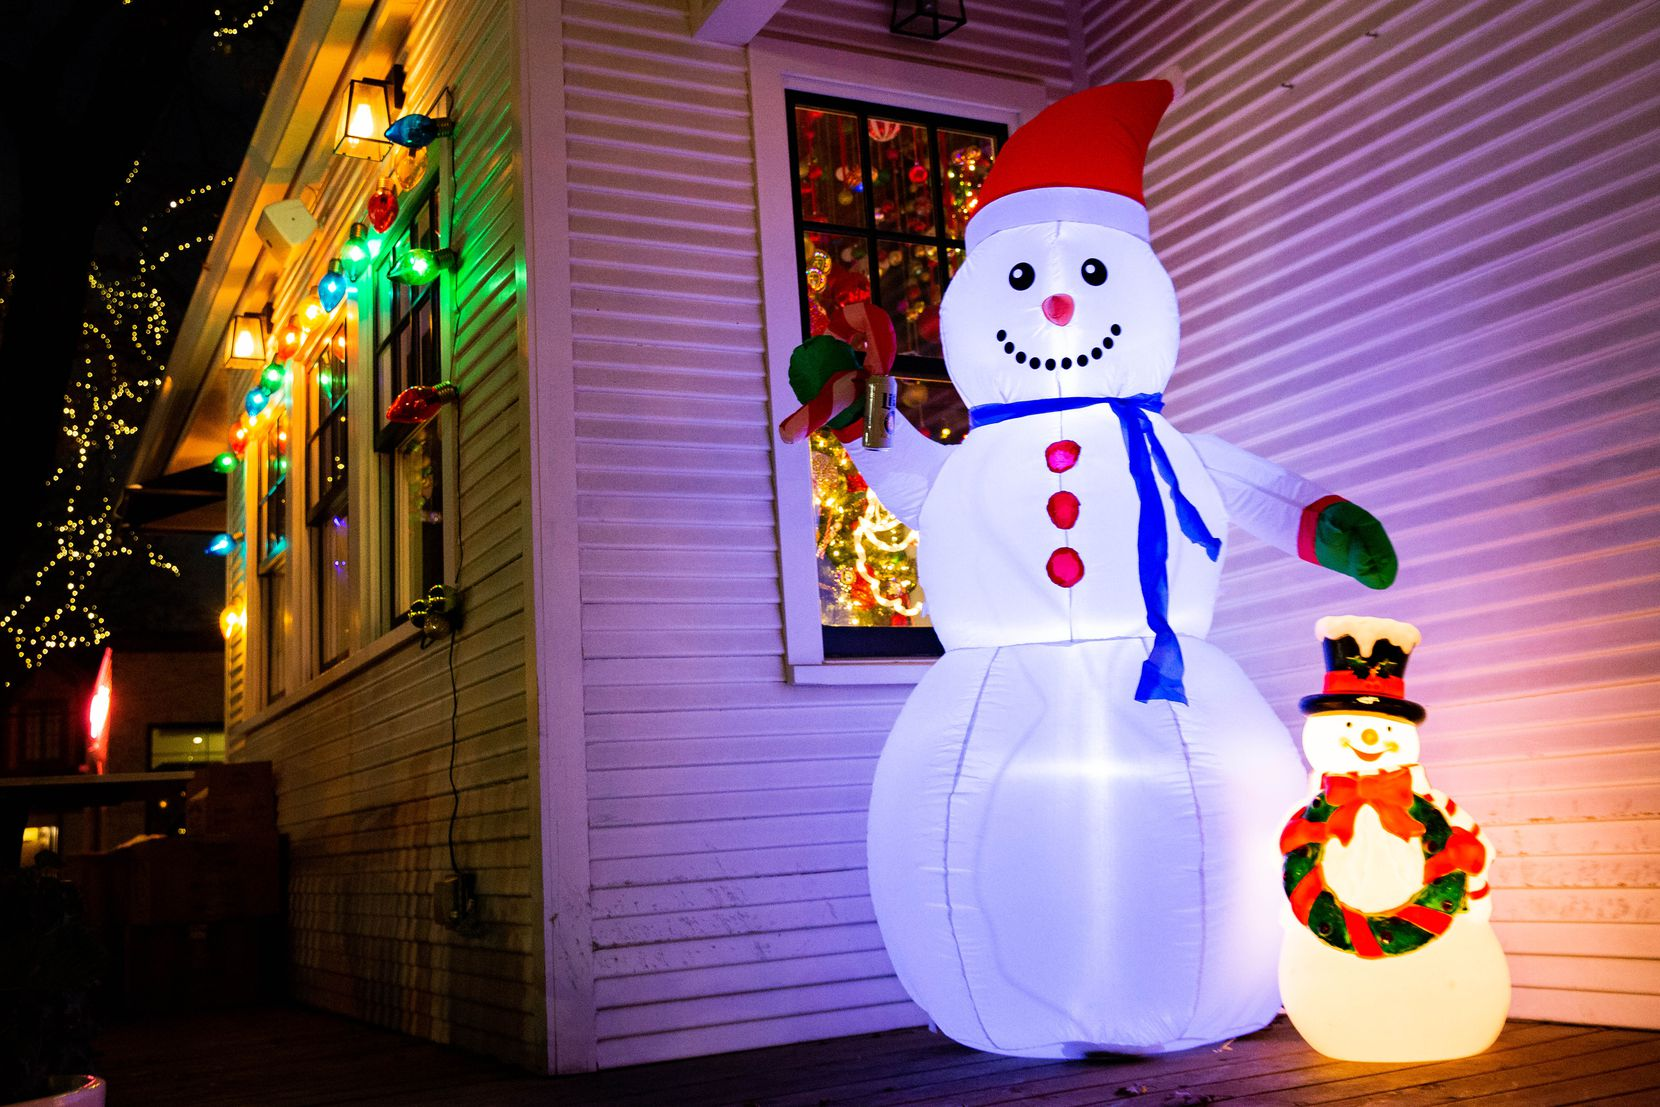 The Tipsy Elf is inside a little white house at the corner of N. Bishop Avenue and Melba Street in Dallas.